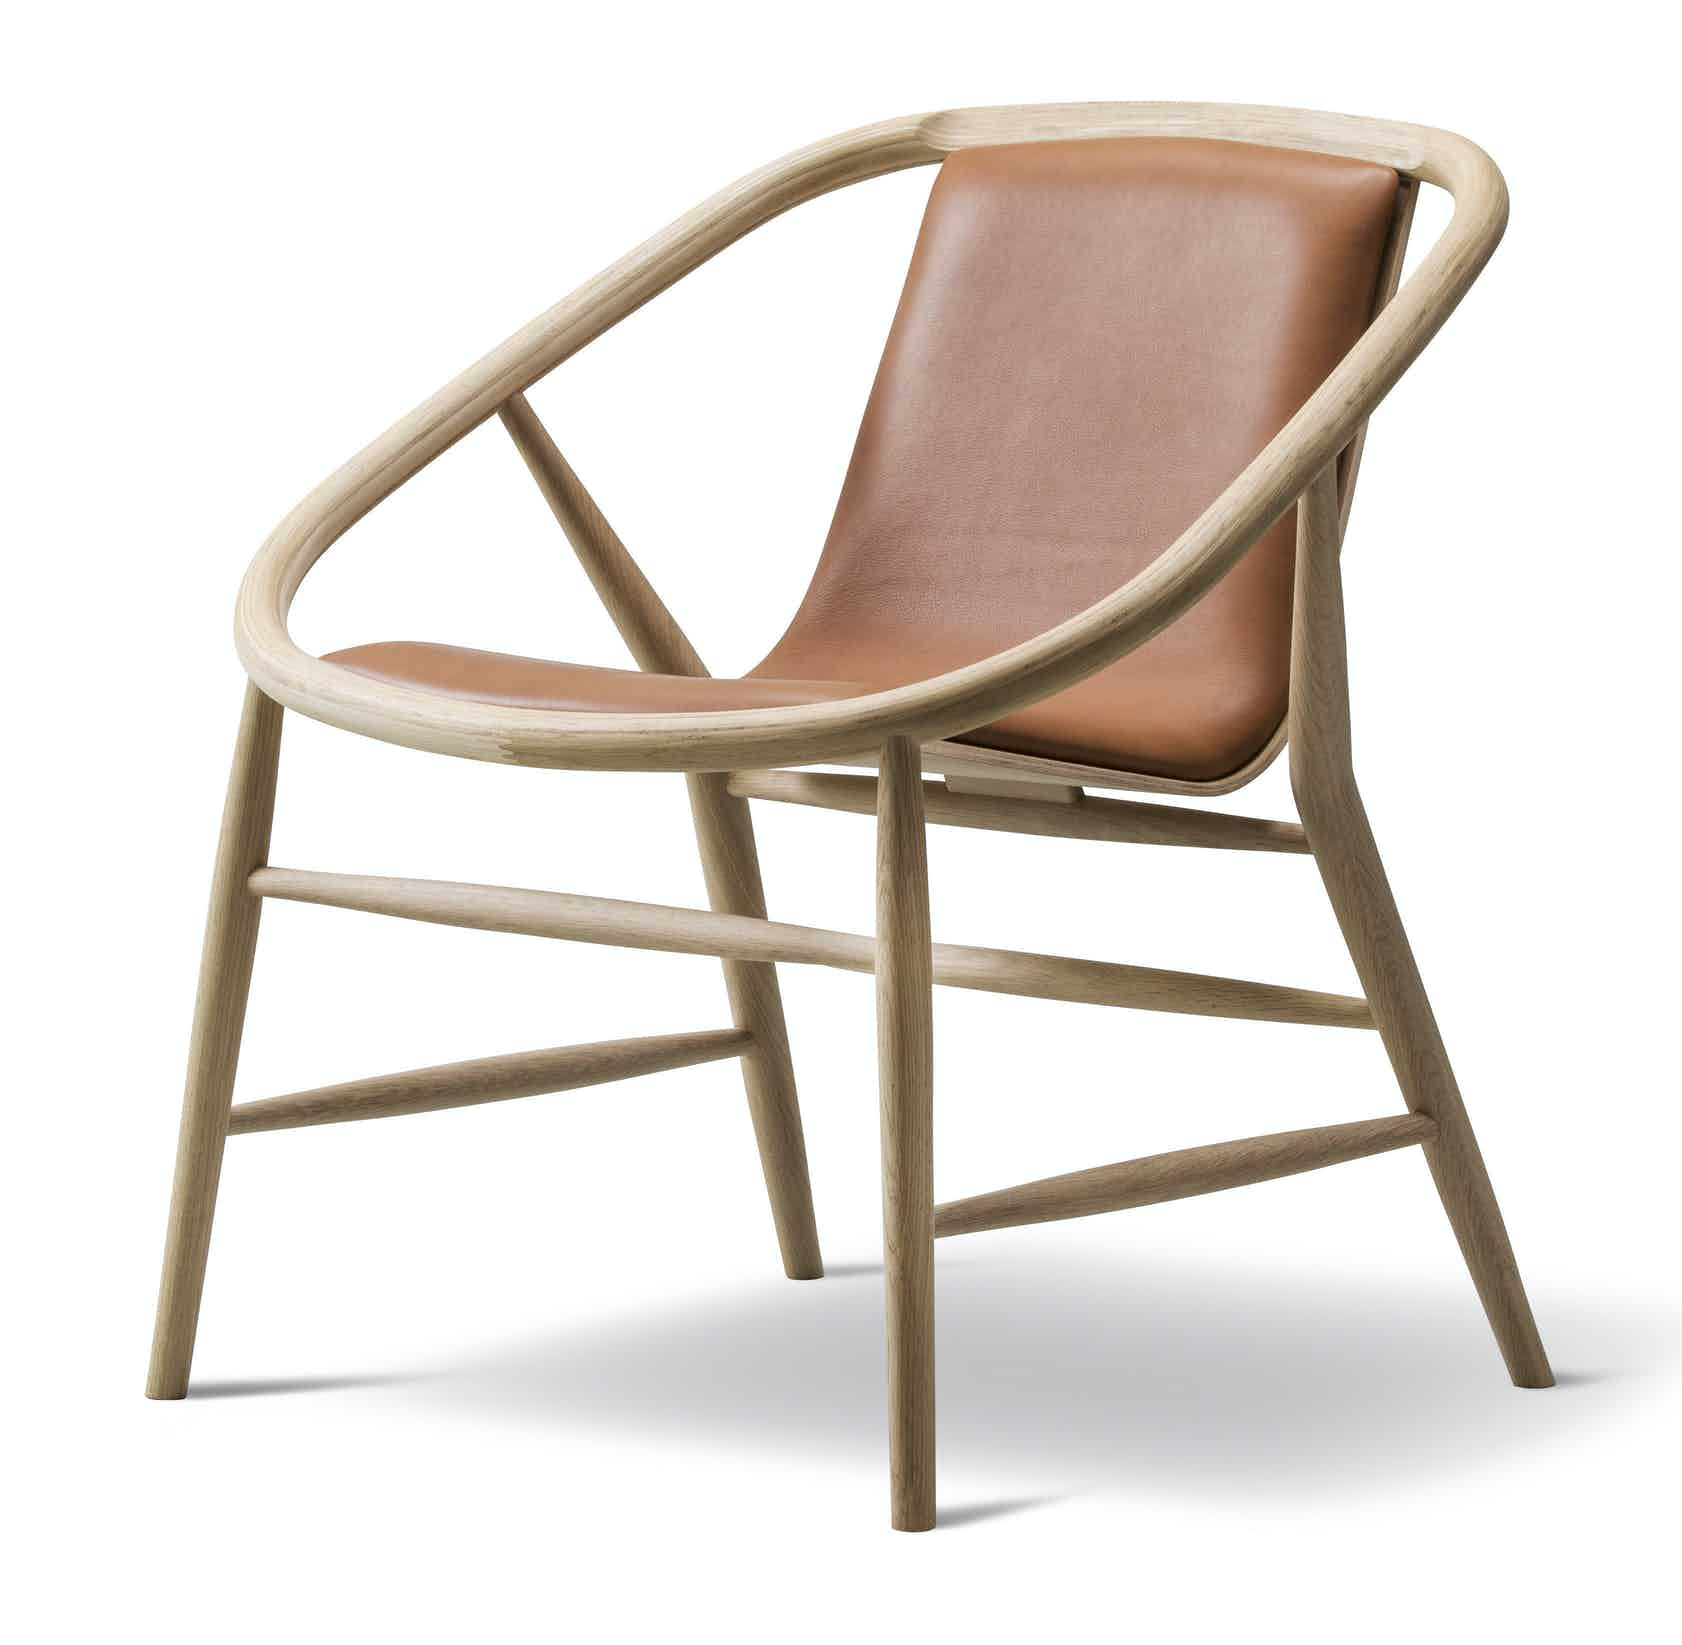 Fredericia Furniture Eve Chair Angle Haute Living 181128 145049